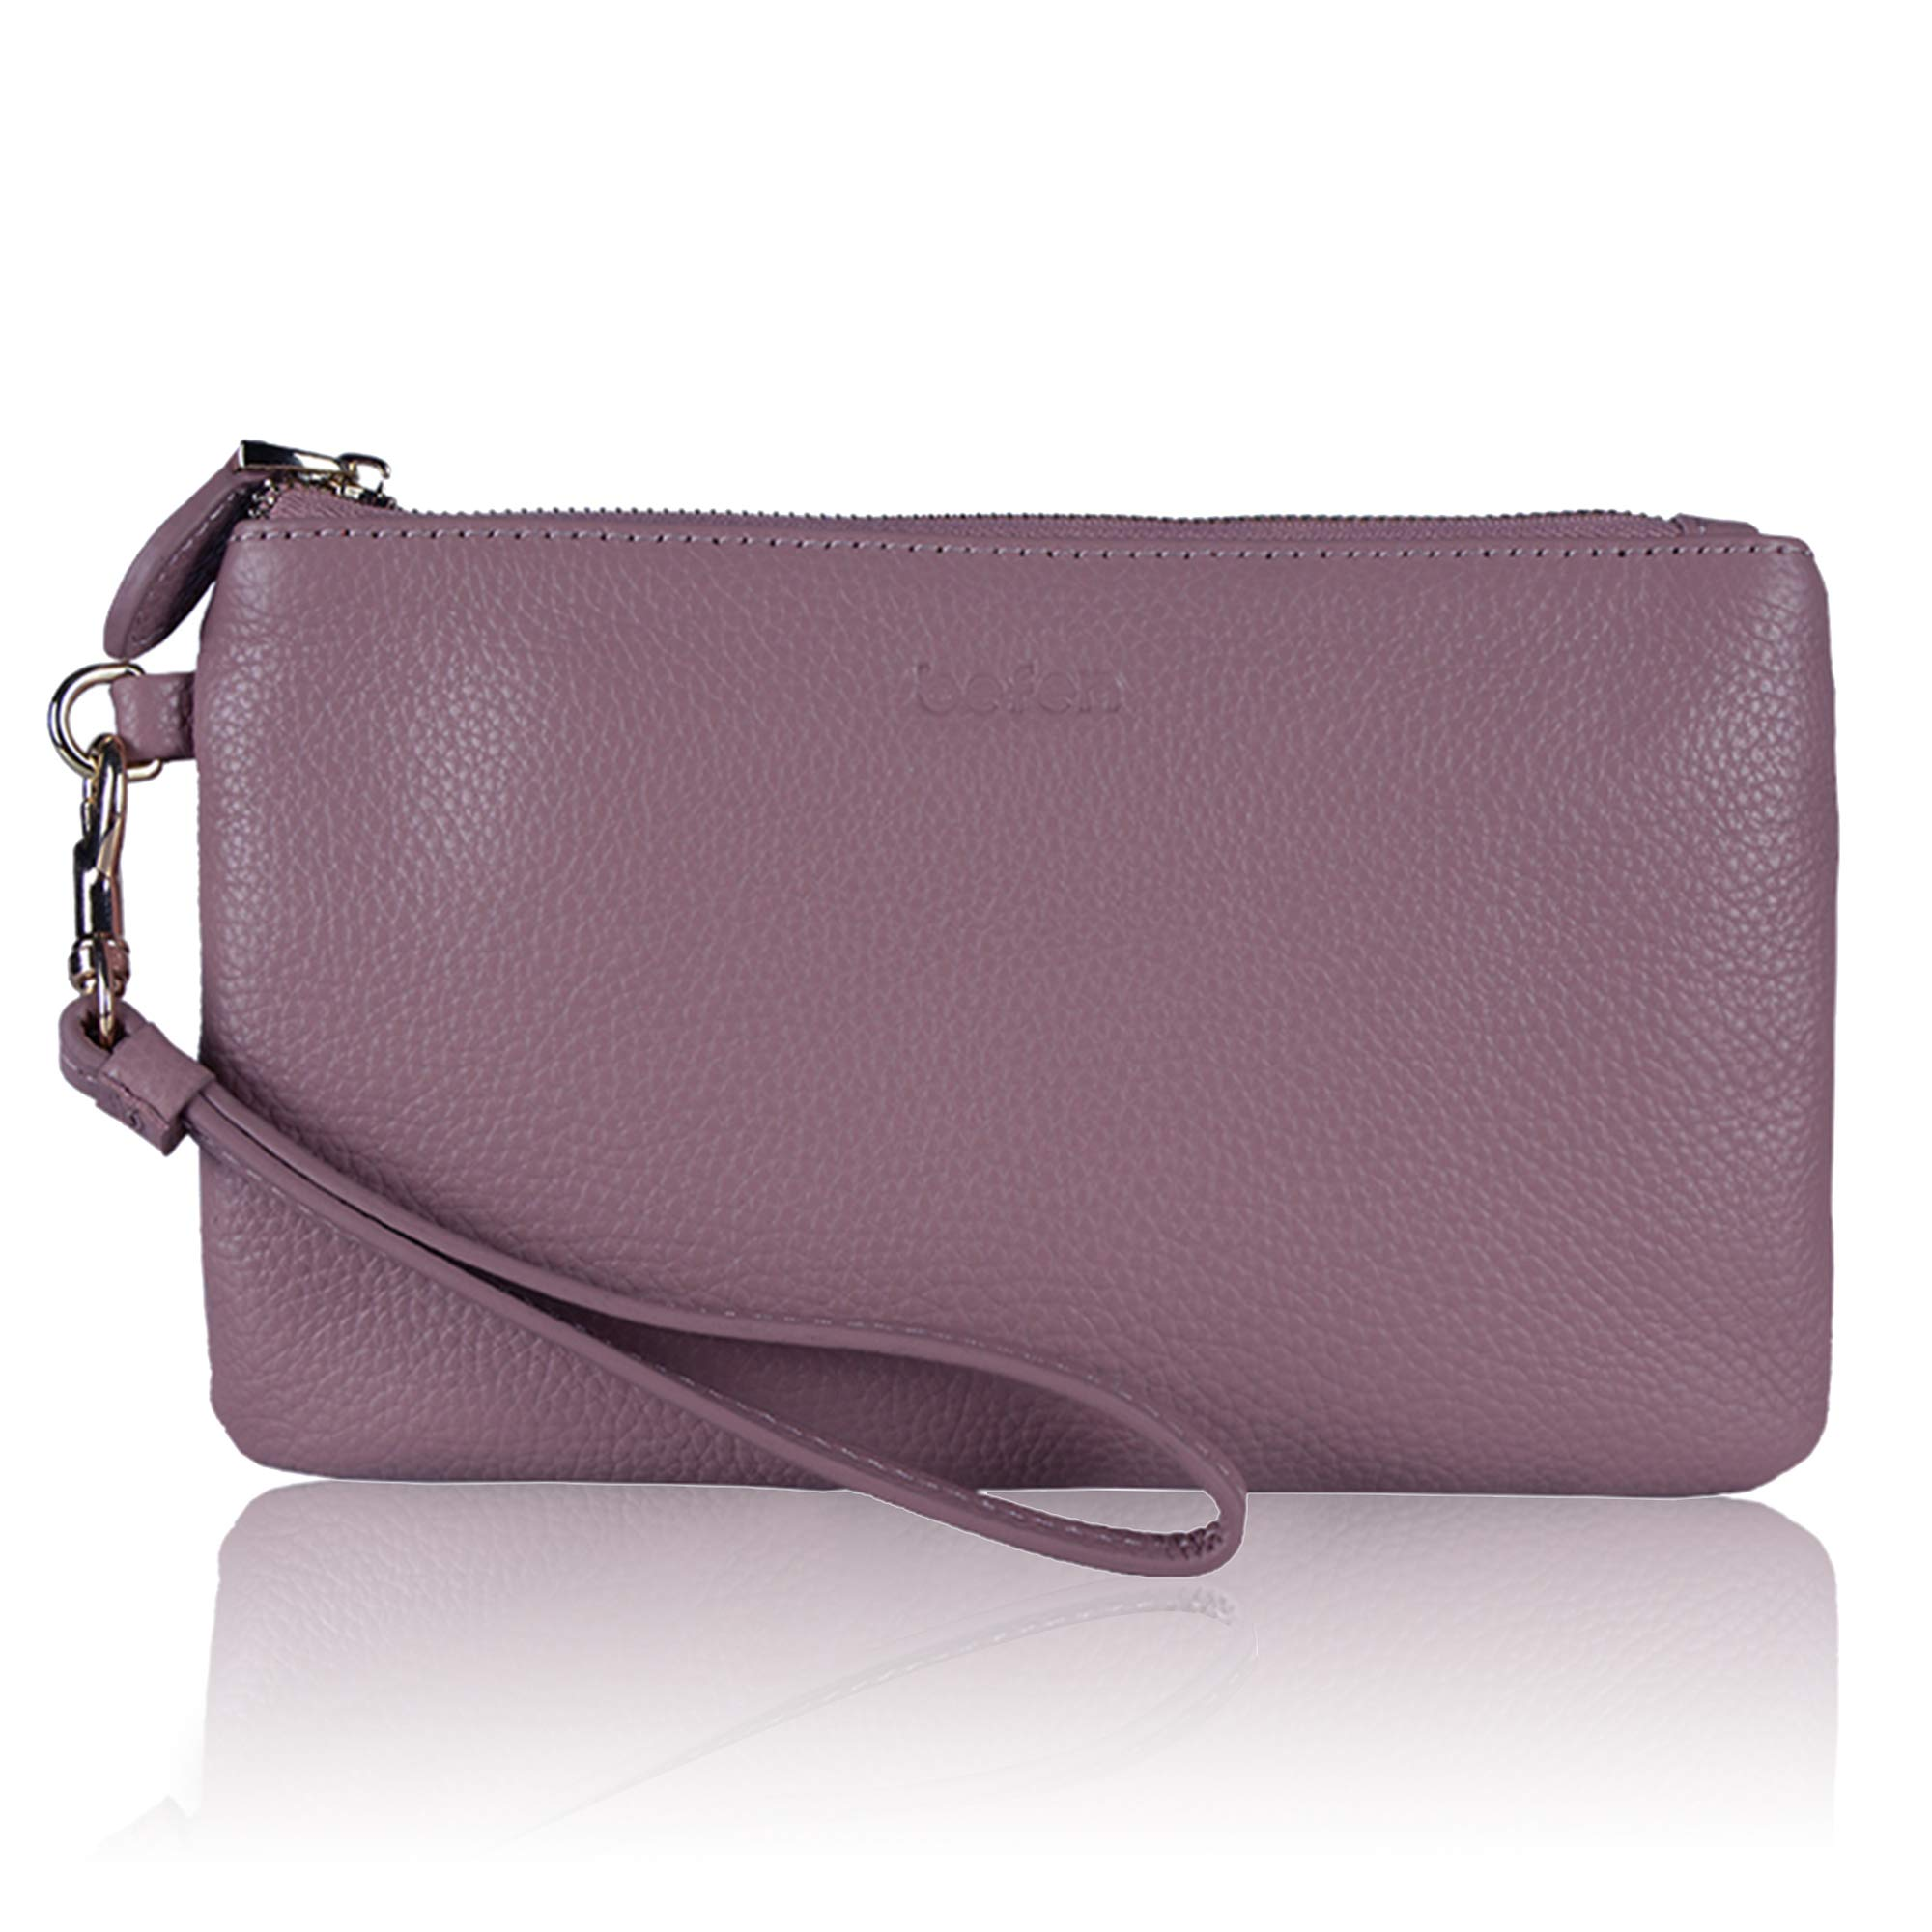 Befen Women Genuine Leather Clutch Wallet Smartphone Wristlet Purse - Fit iPhone 8 Plus (Purple Pink)